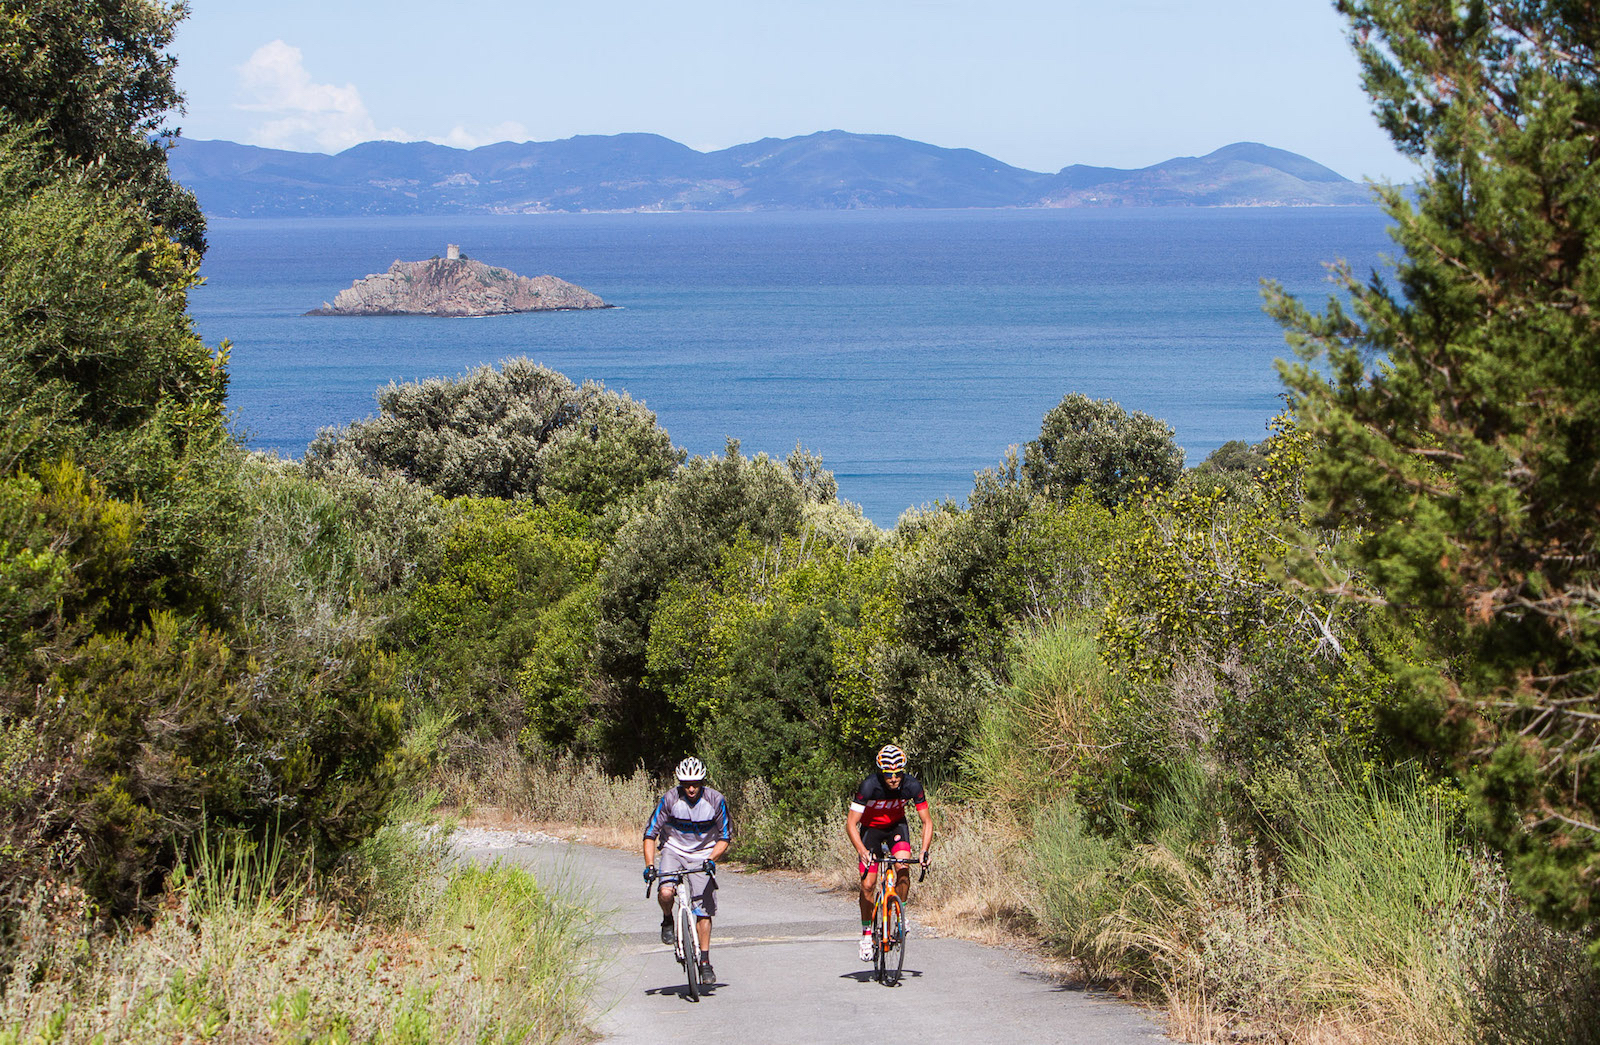 Gravel Road Challenge 2016 is presented by Punta Ala Trail Center and hosted at its base, PuntAla Camping Resort. The ride will begin and end at the resort's pristine shore, and riders are encouraged to take advantage of the great autumn accommodation pricing to make it a holiday for all the family.